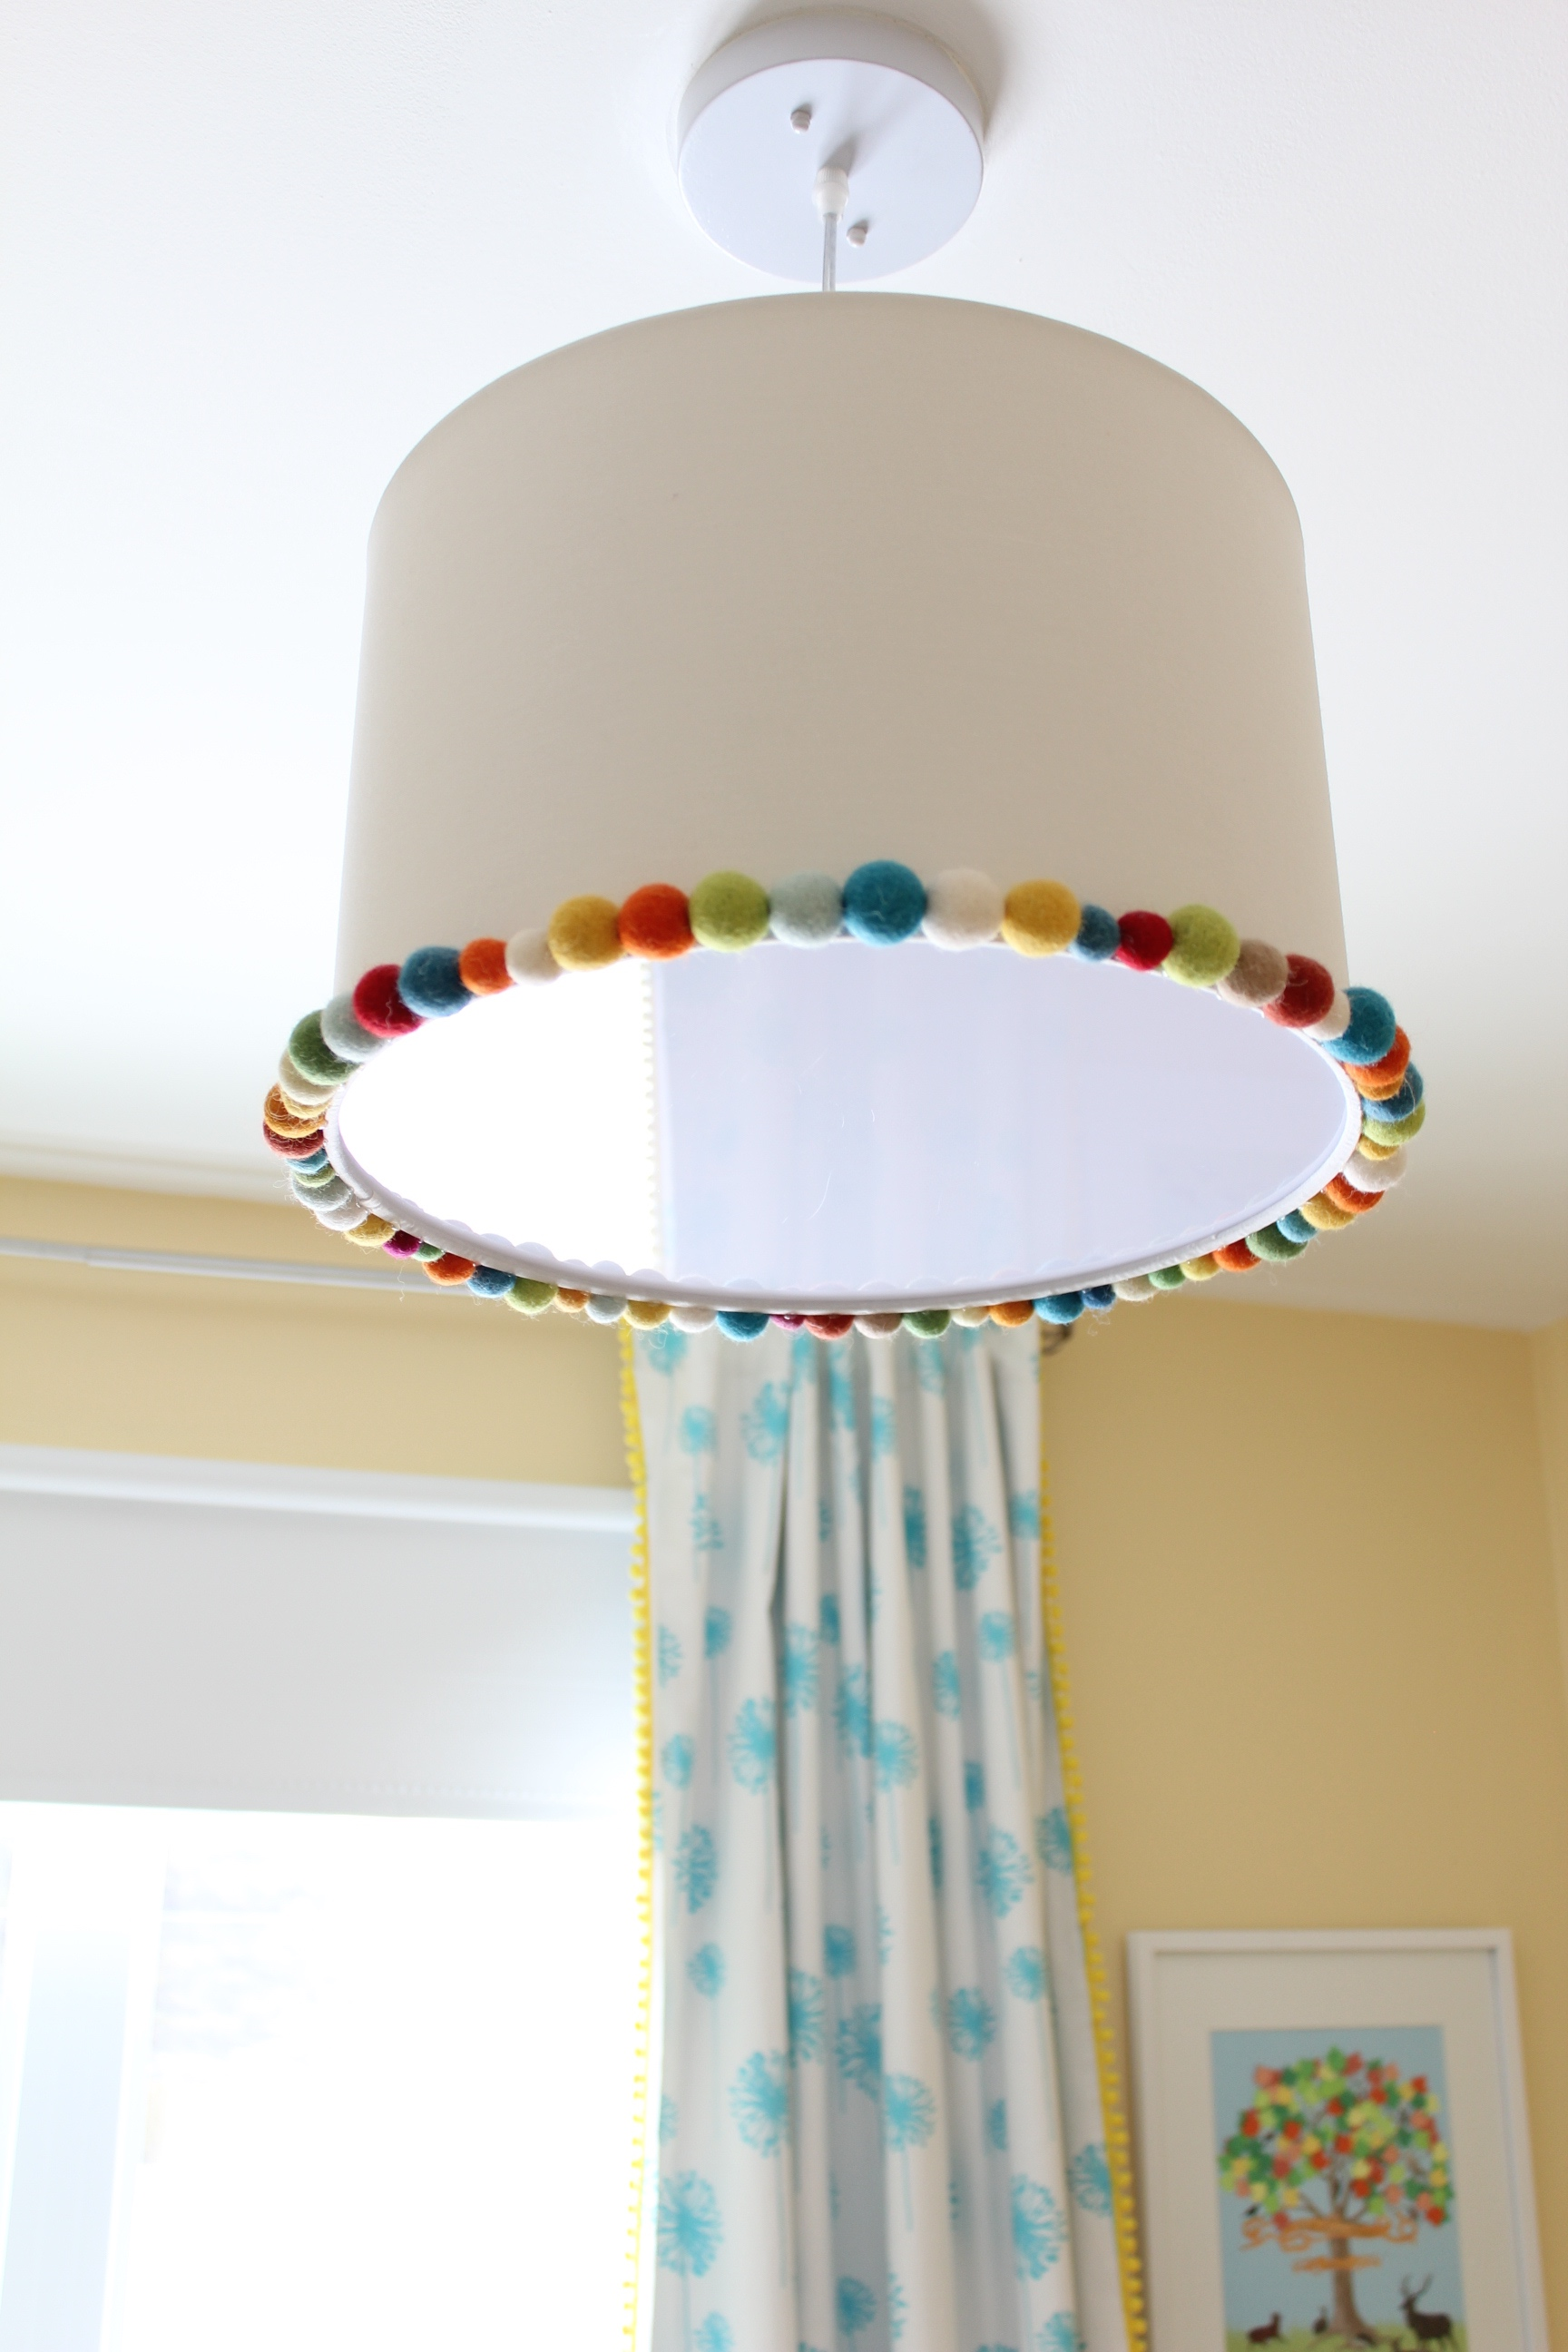 ceiling light fixture embellished with felt balls